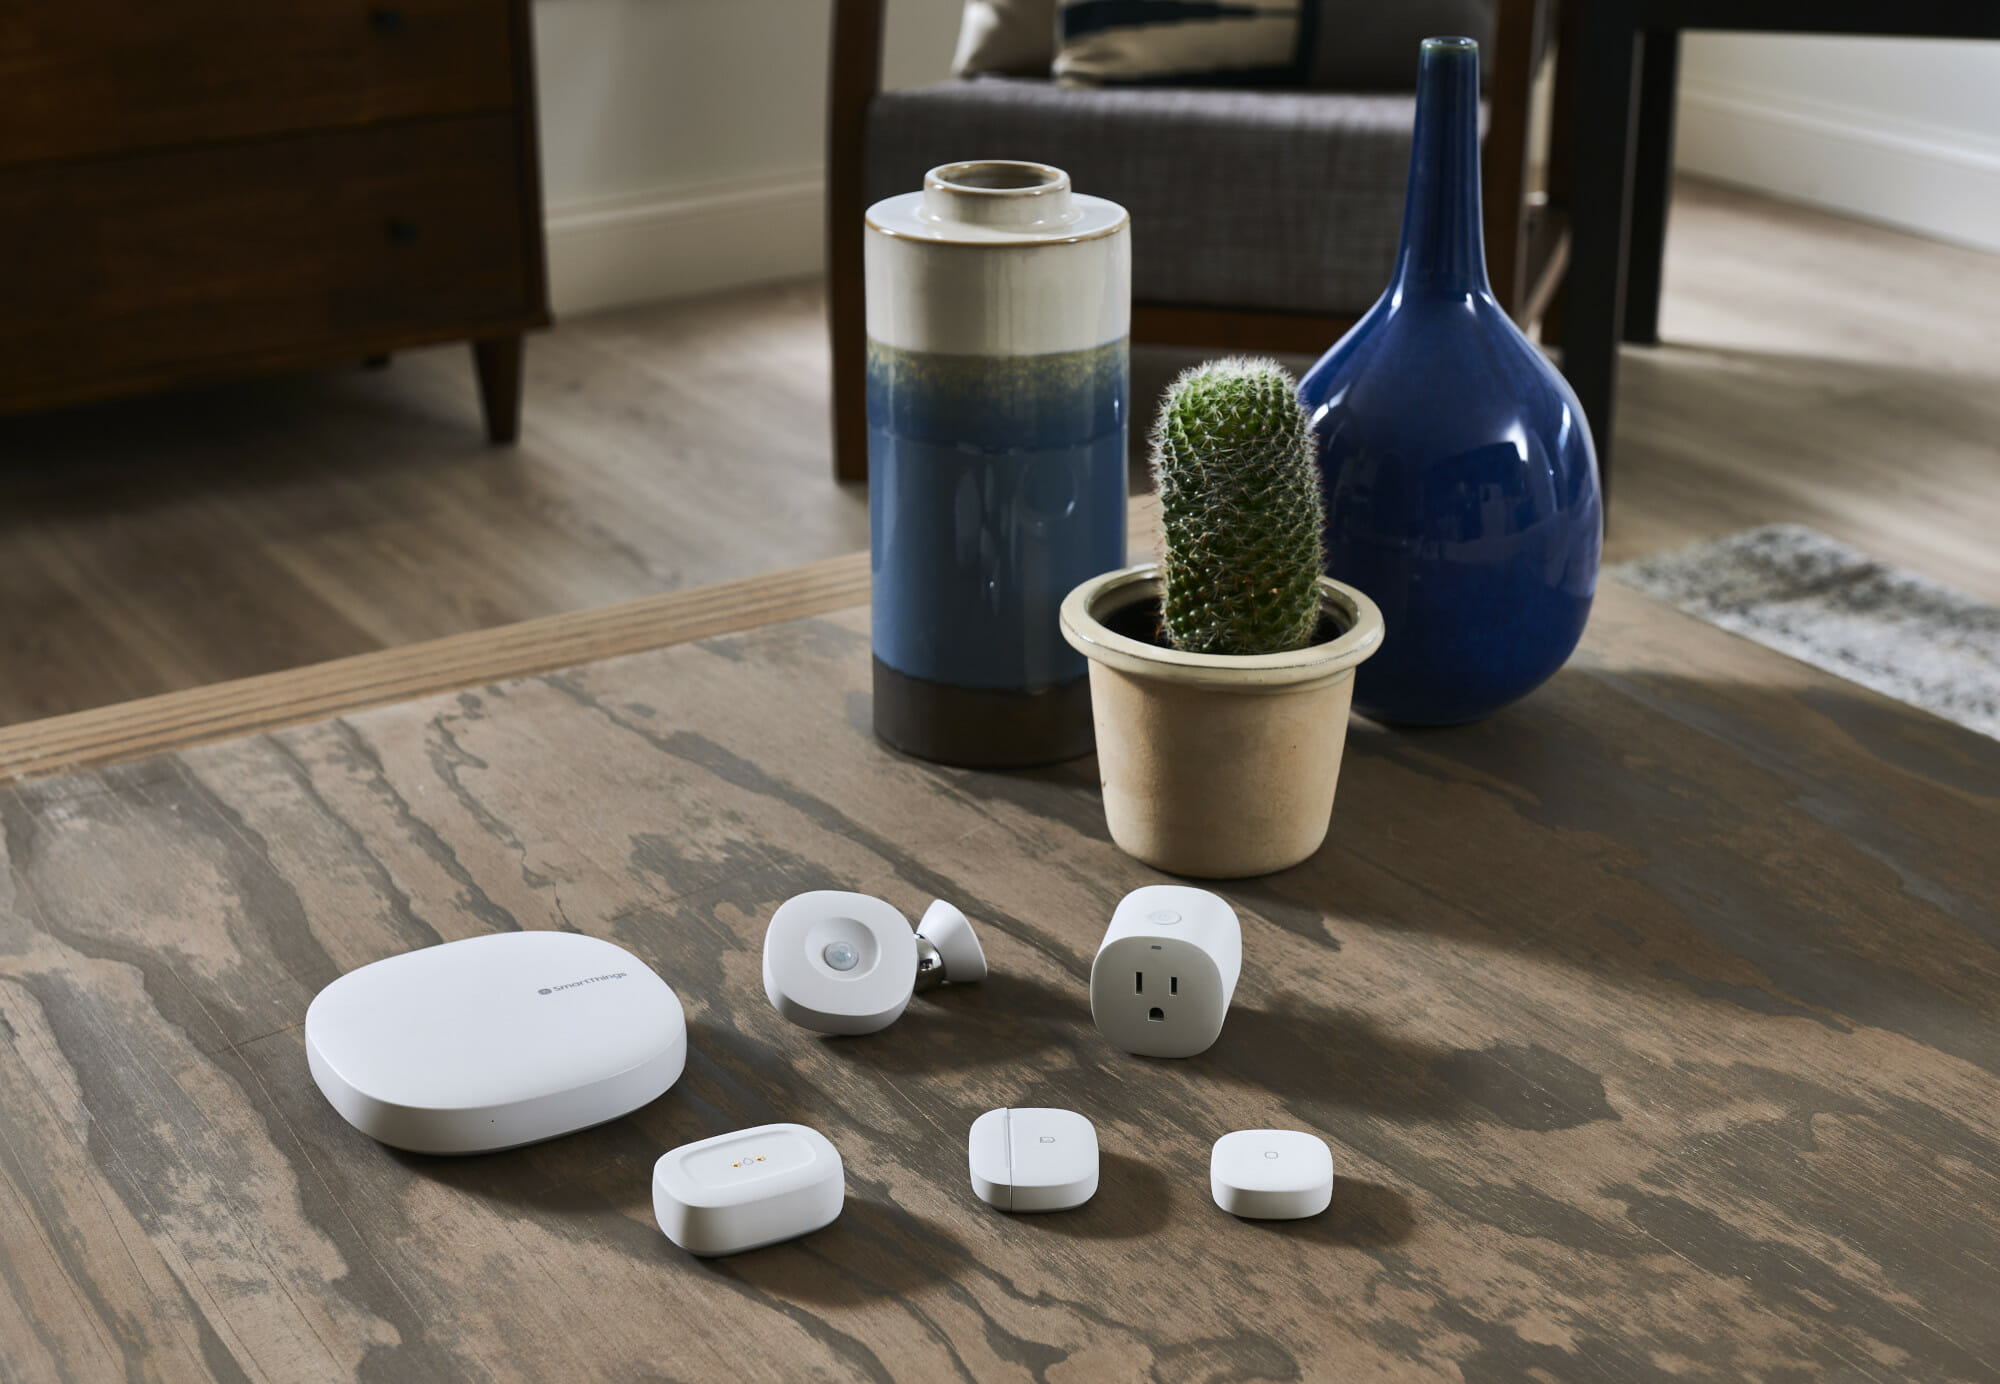 Google Home Accessories Compatible Devices For Your